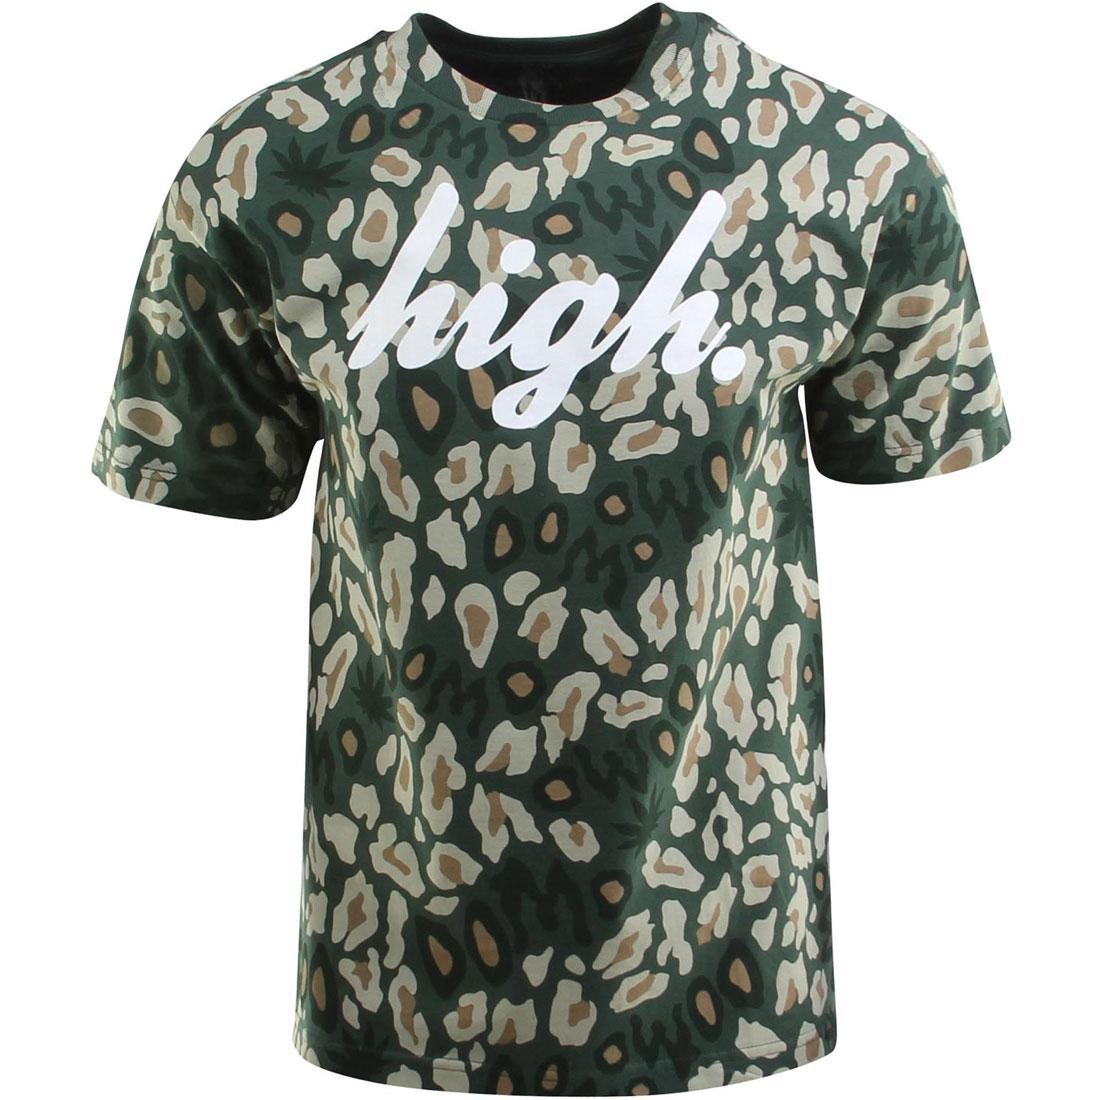 Odd Future High Camo Tee (camo / multi)